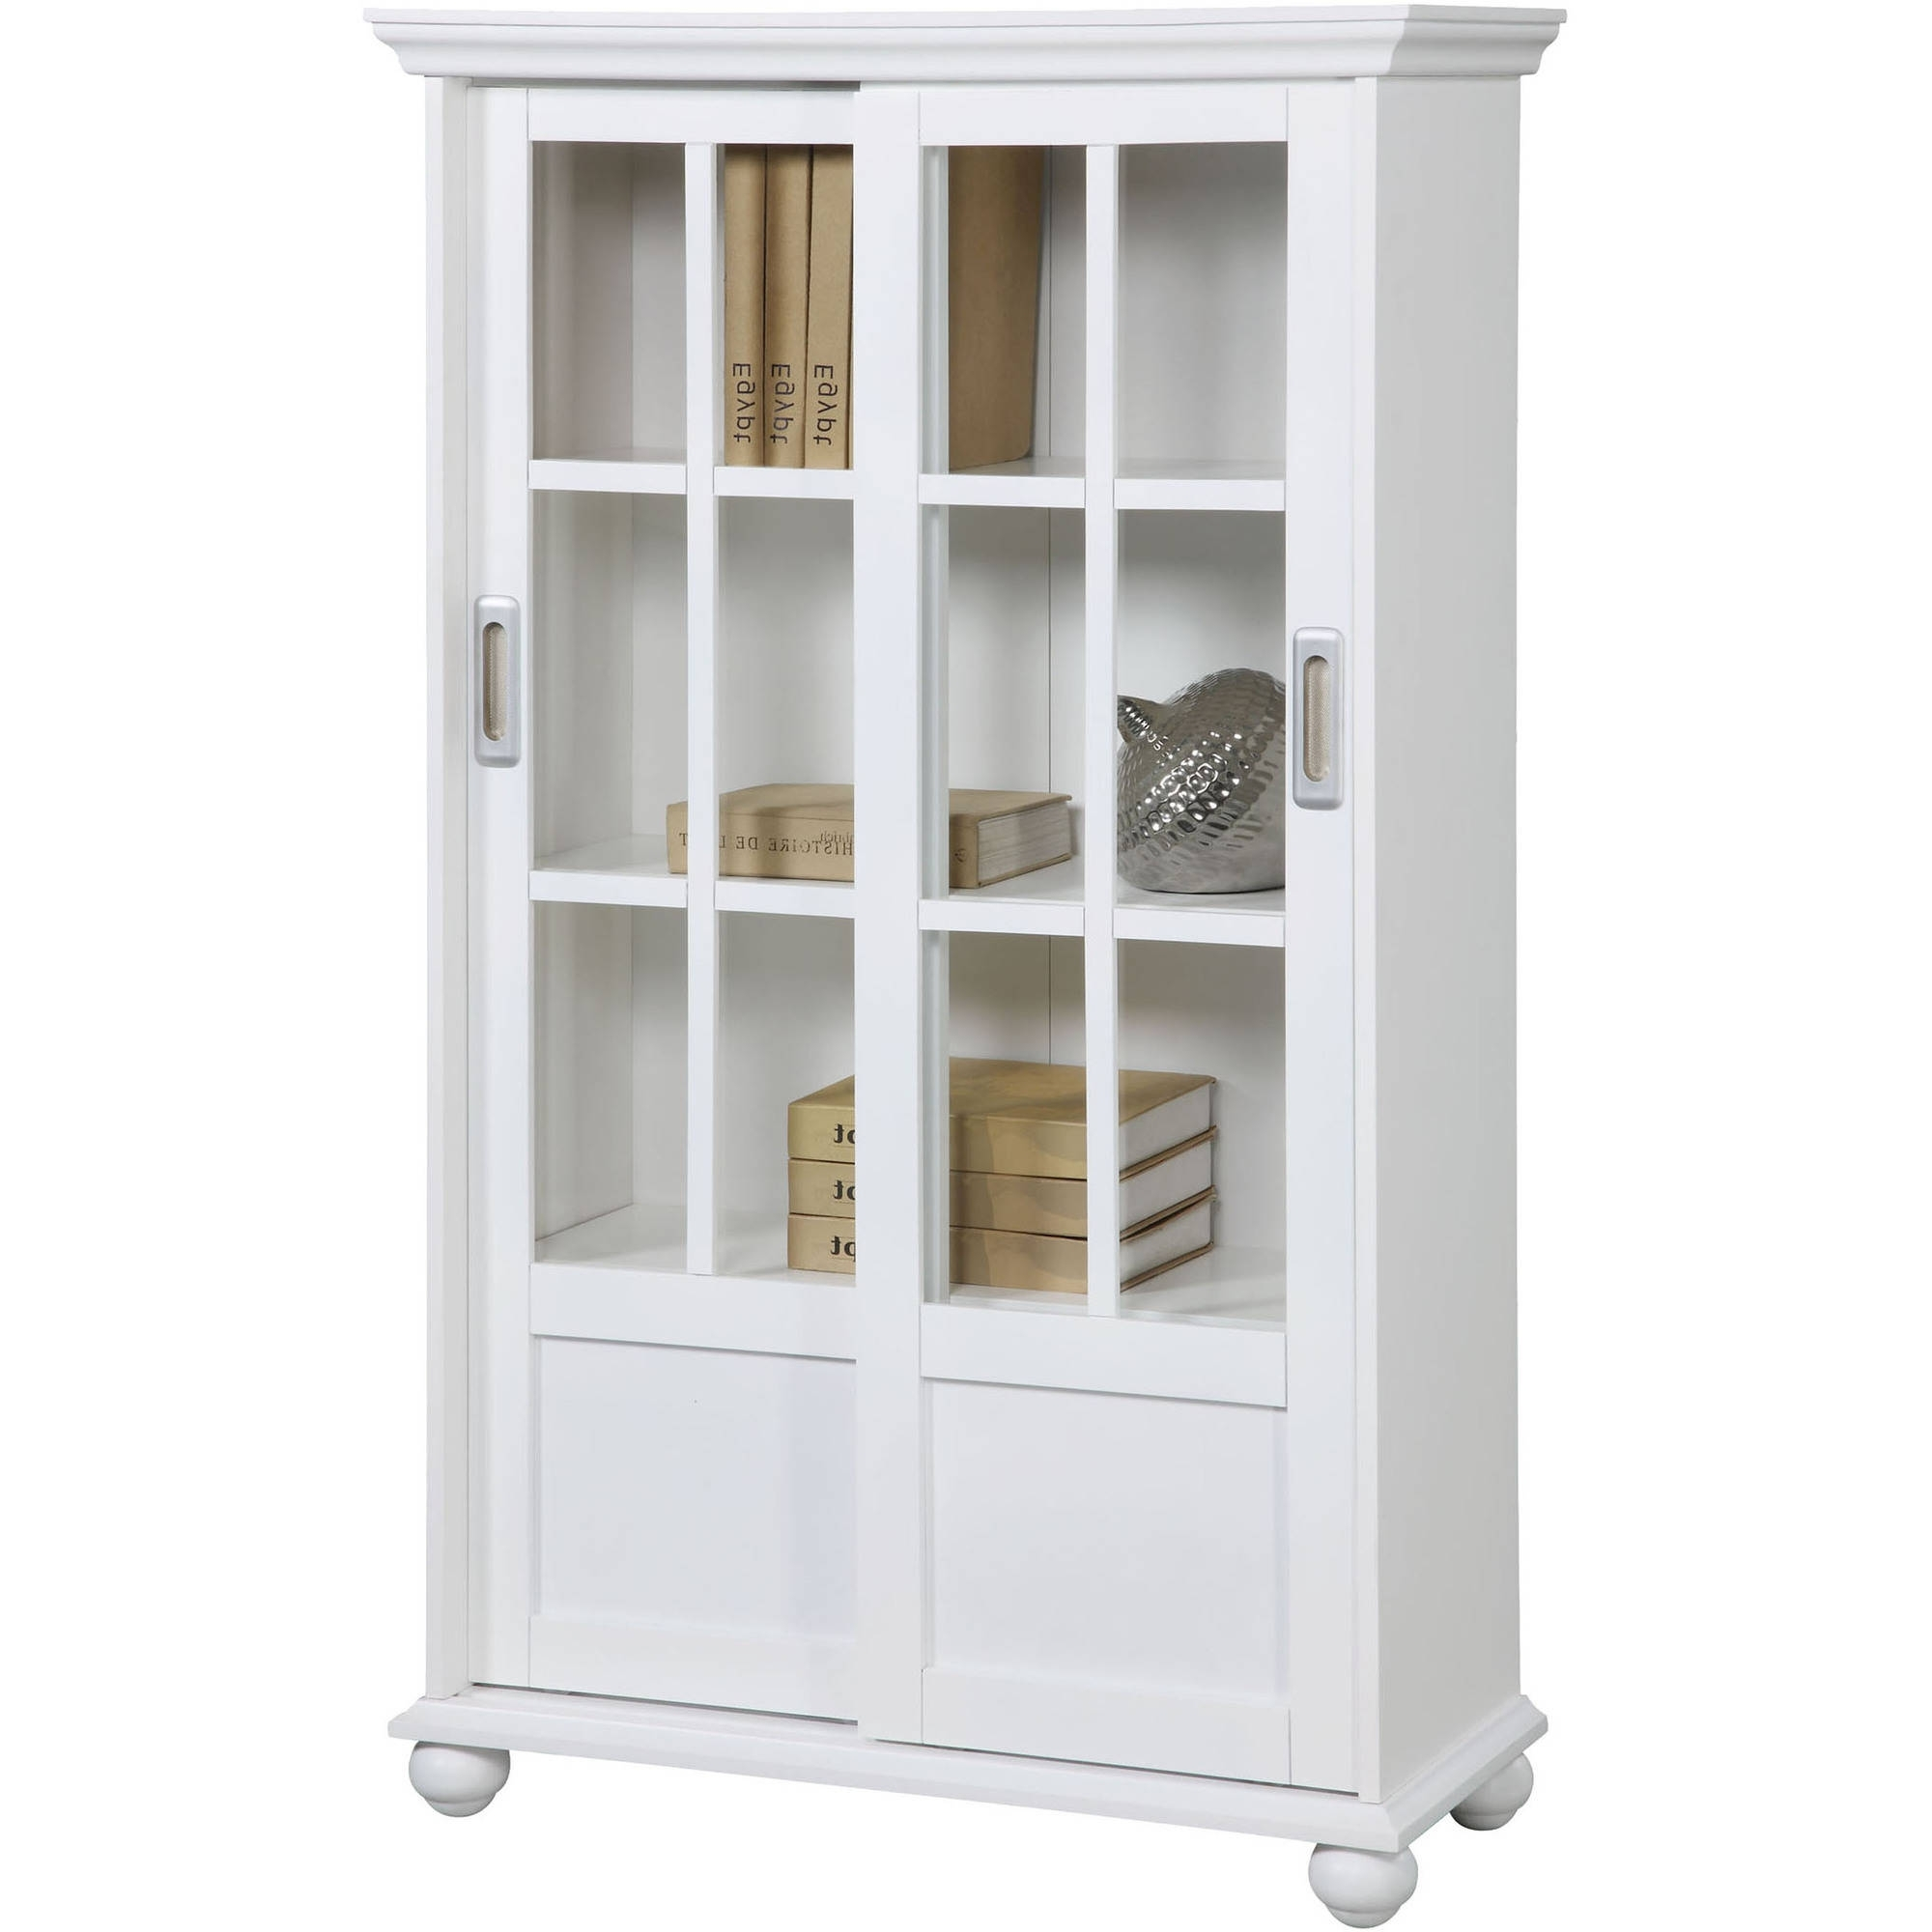 Ameriwood Home Aaron Lane Bookcase With Sliding Glass Doors Intended For Trendy Walmart Bookcases (View 2 of 15)